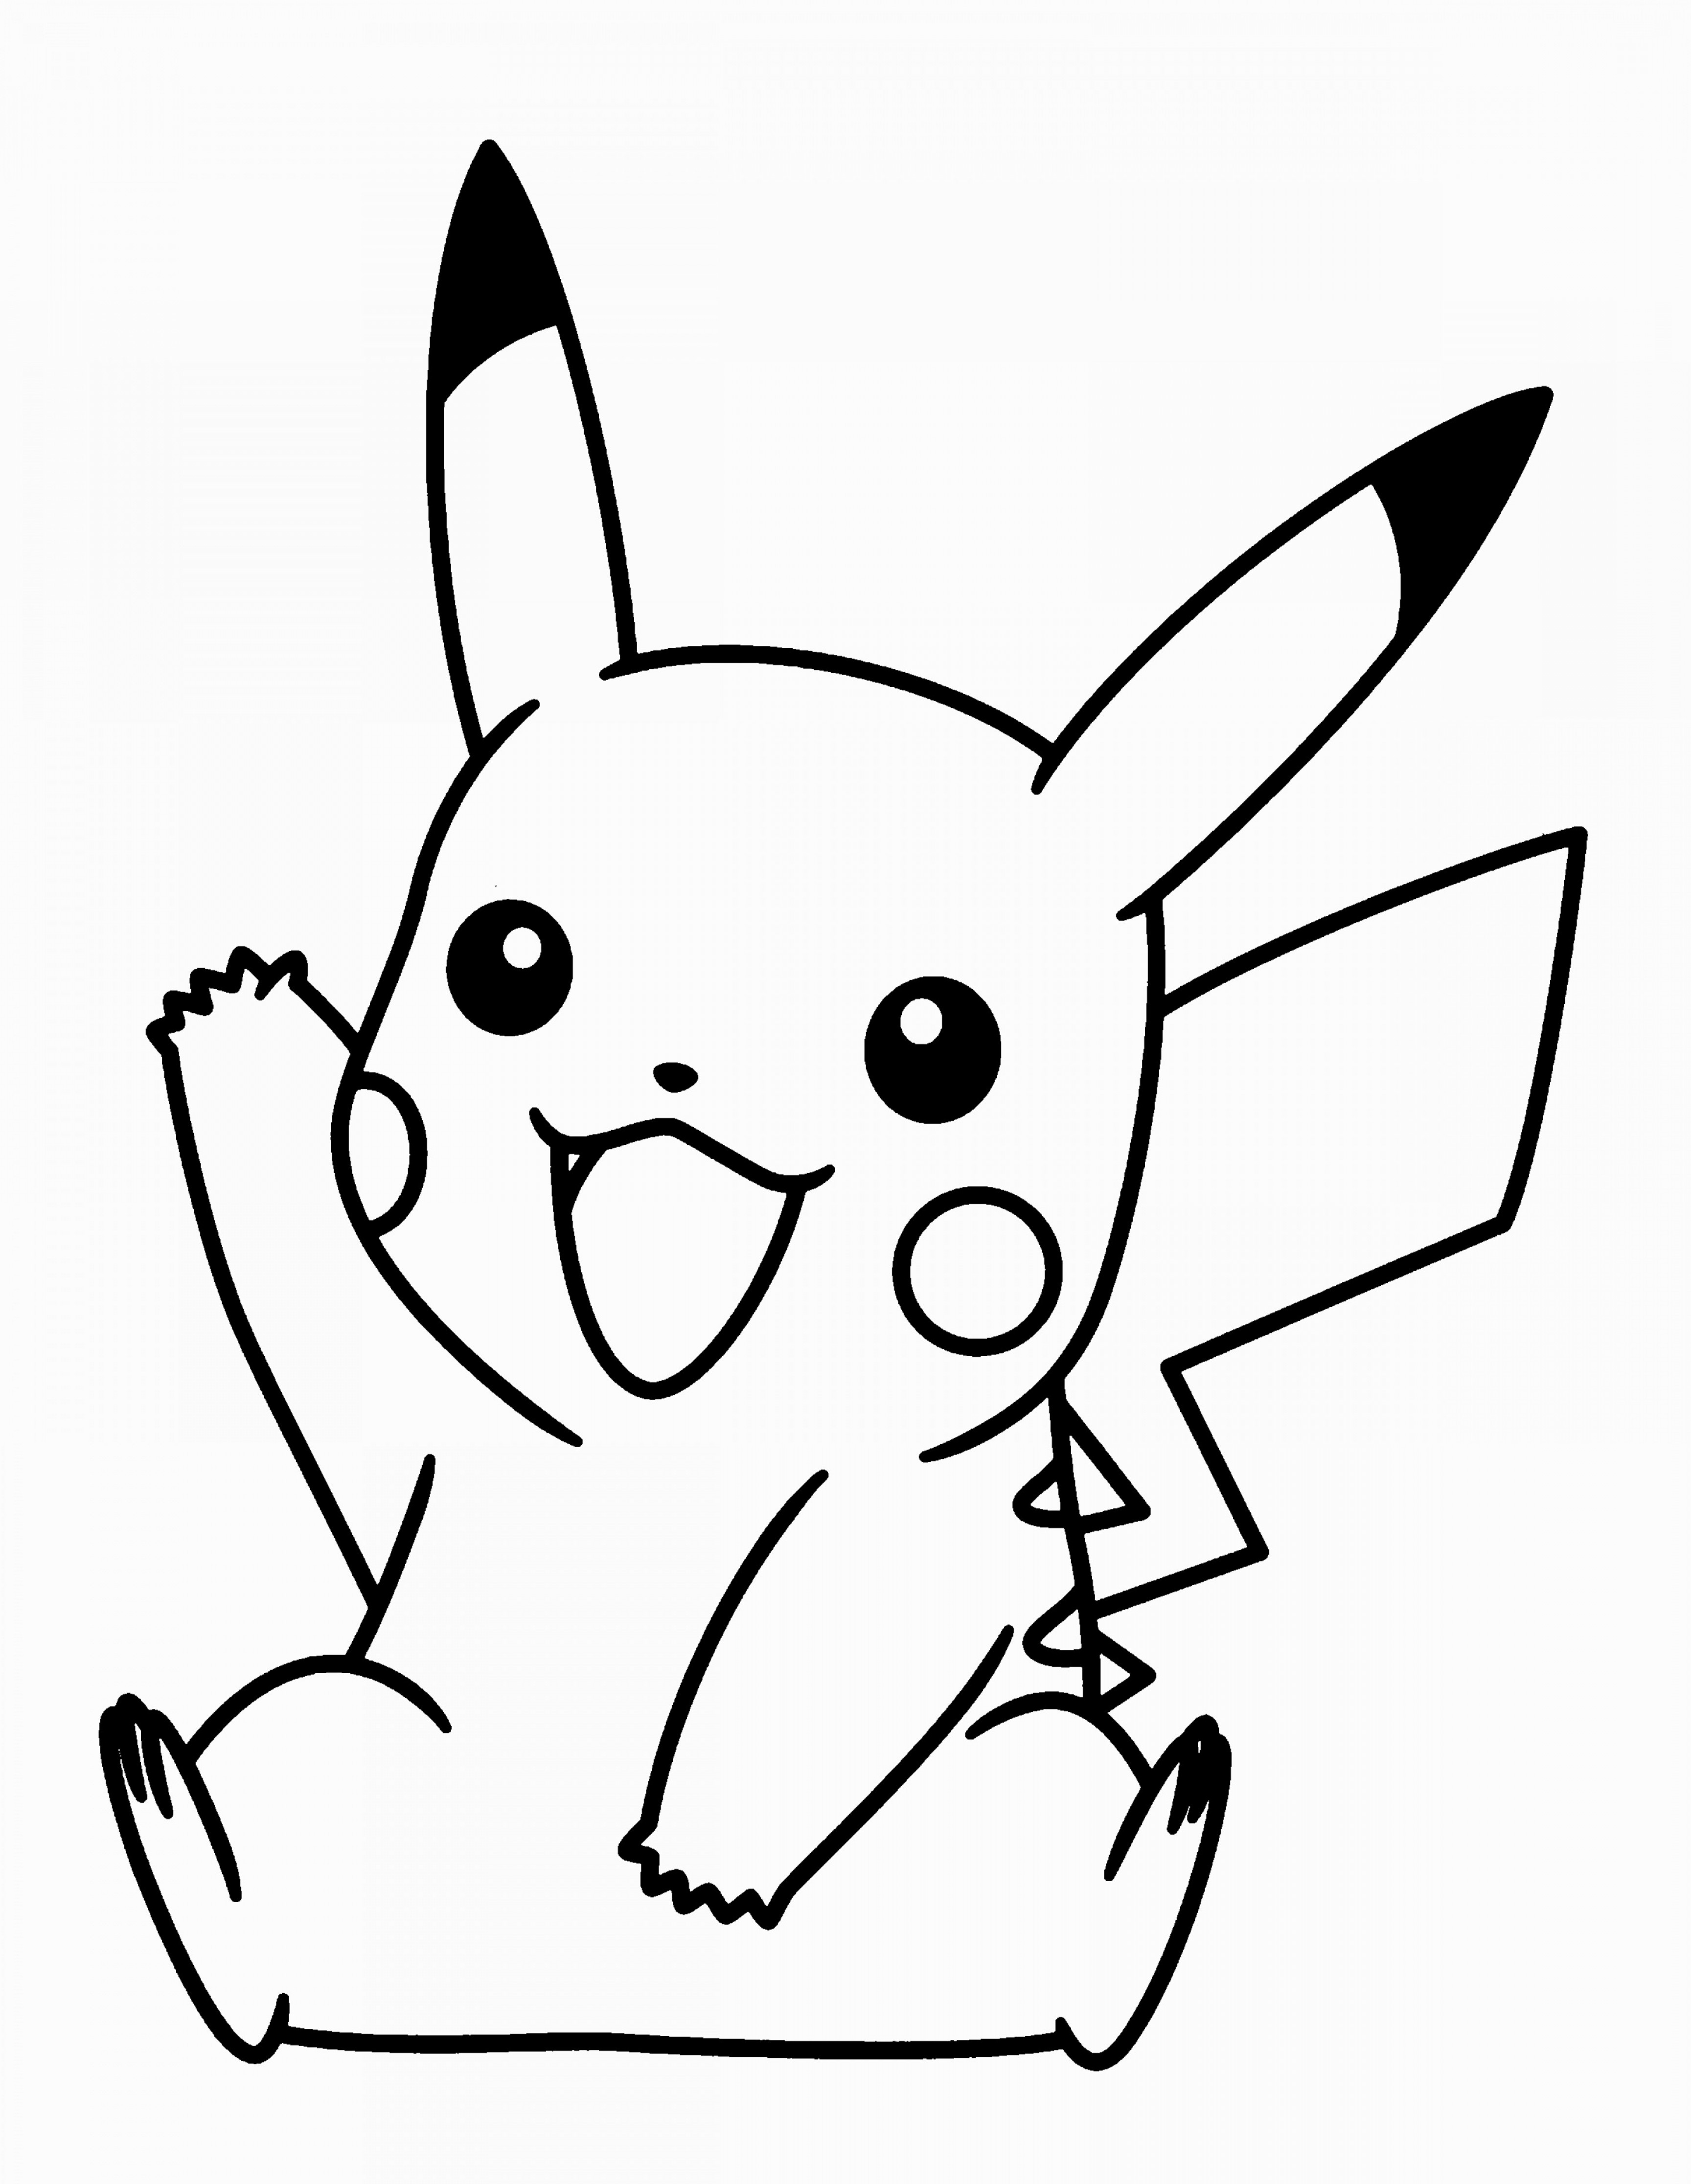 3456x4464 Innovational Ideas Pikachu Outline Free Vector Graphic Pokemon Go